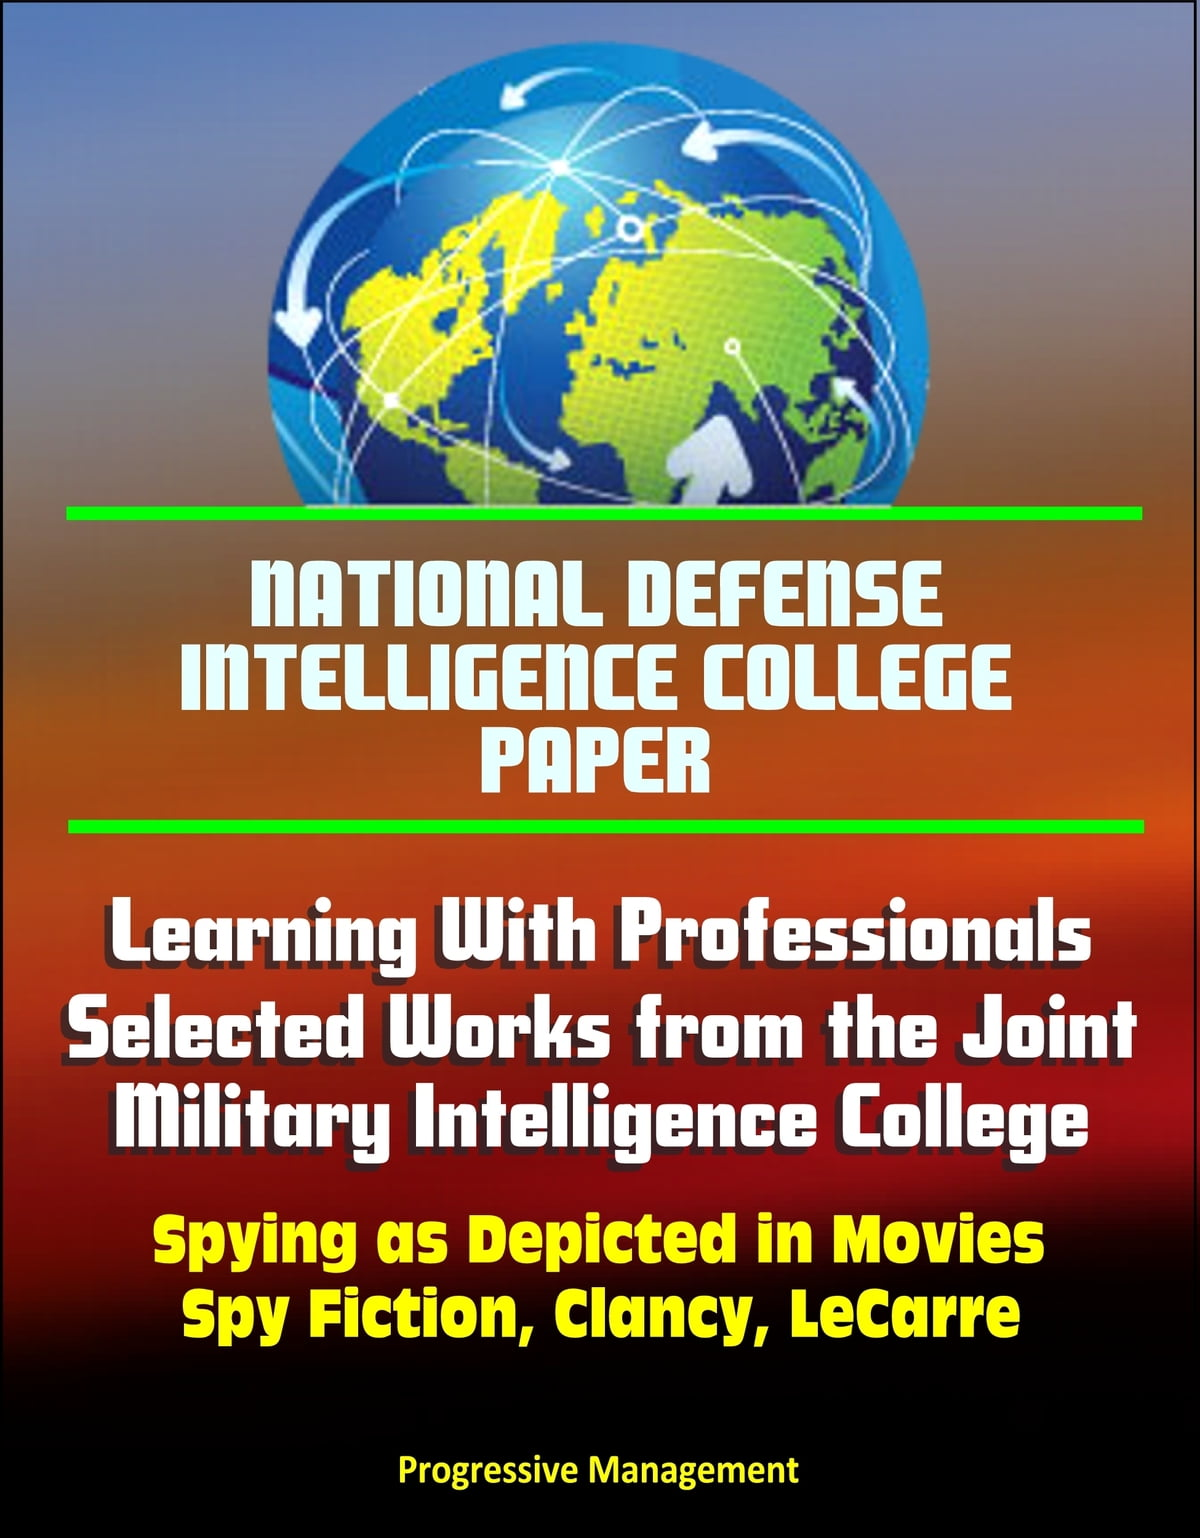 National Defense Intelligence College Paper: Learning With Professionals -  Selected Works from the Joint Military Intelligence College - Spying as